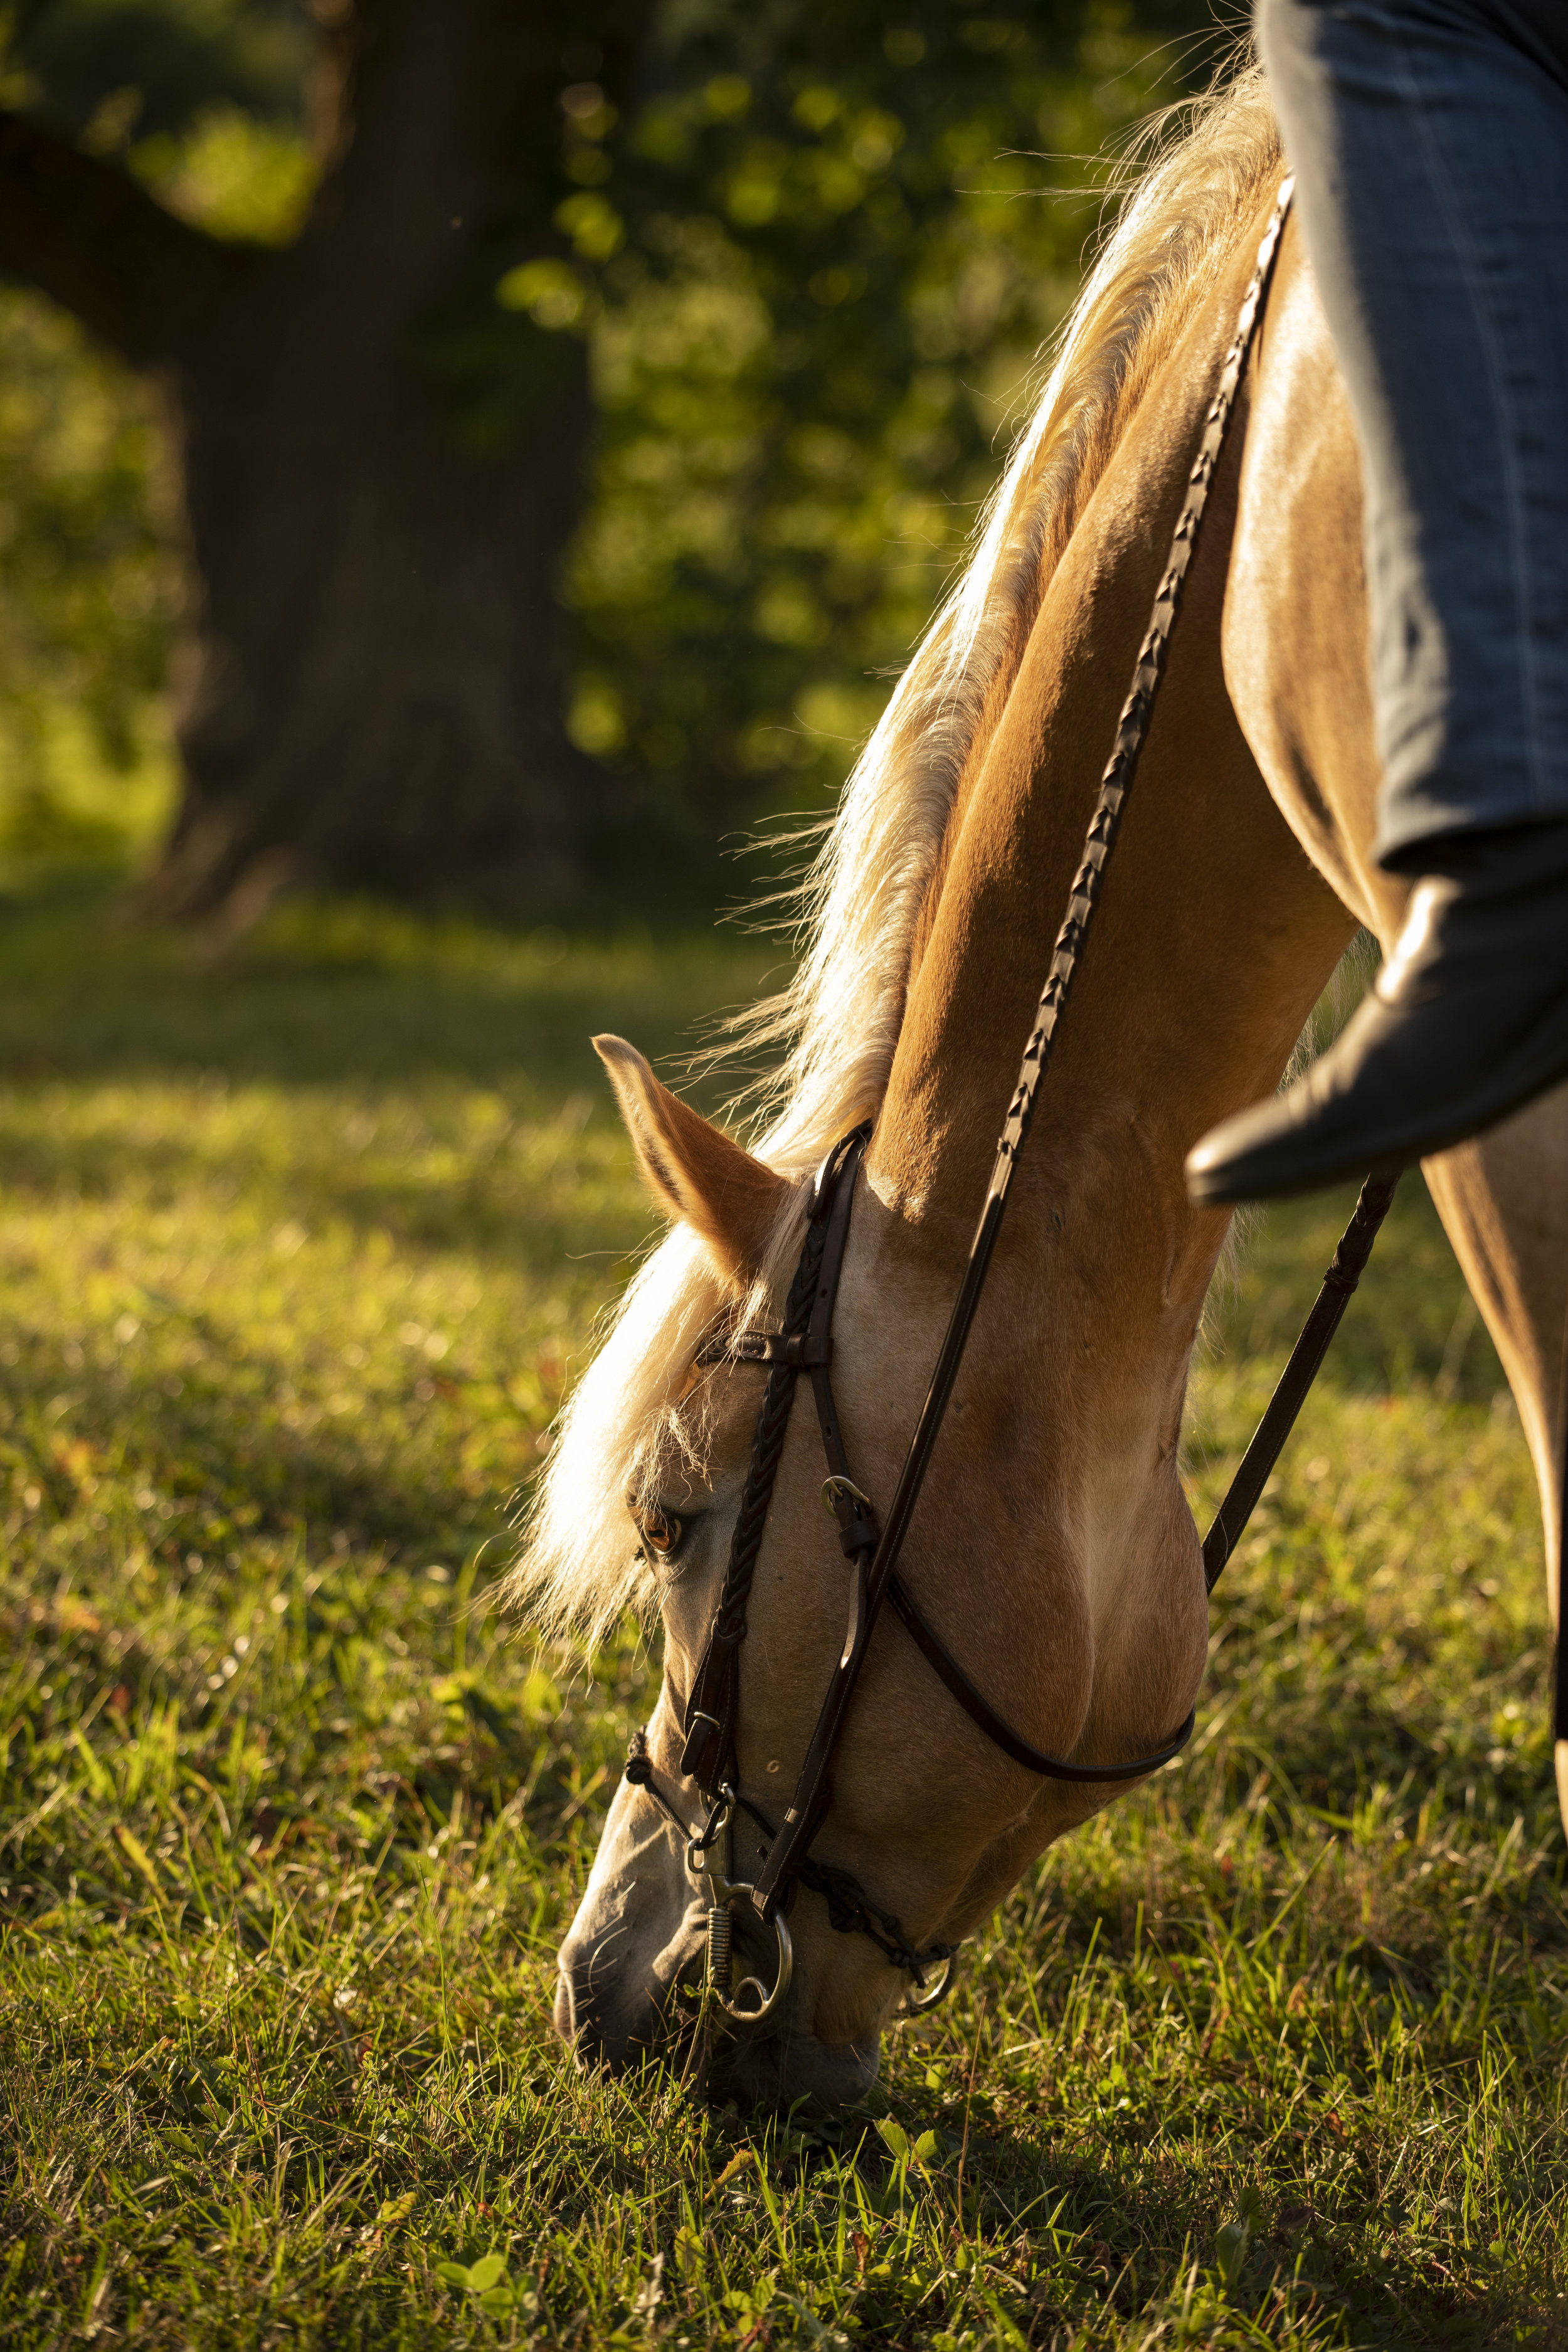 Teach your horse to not eat grass unless you let them!